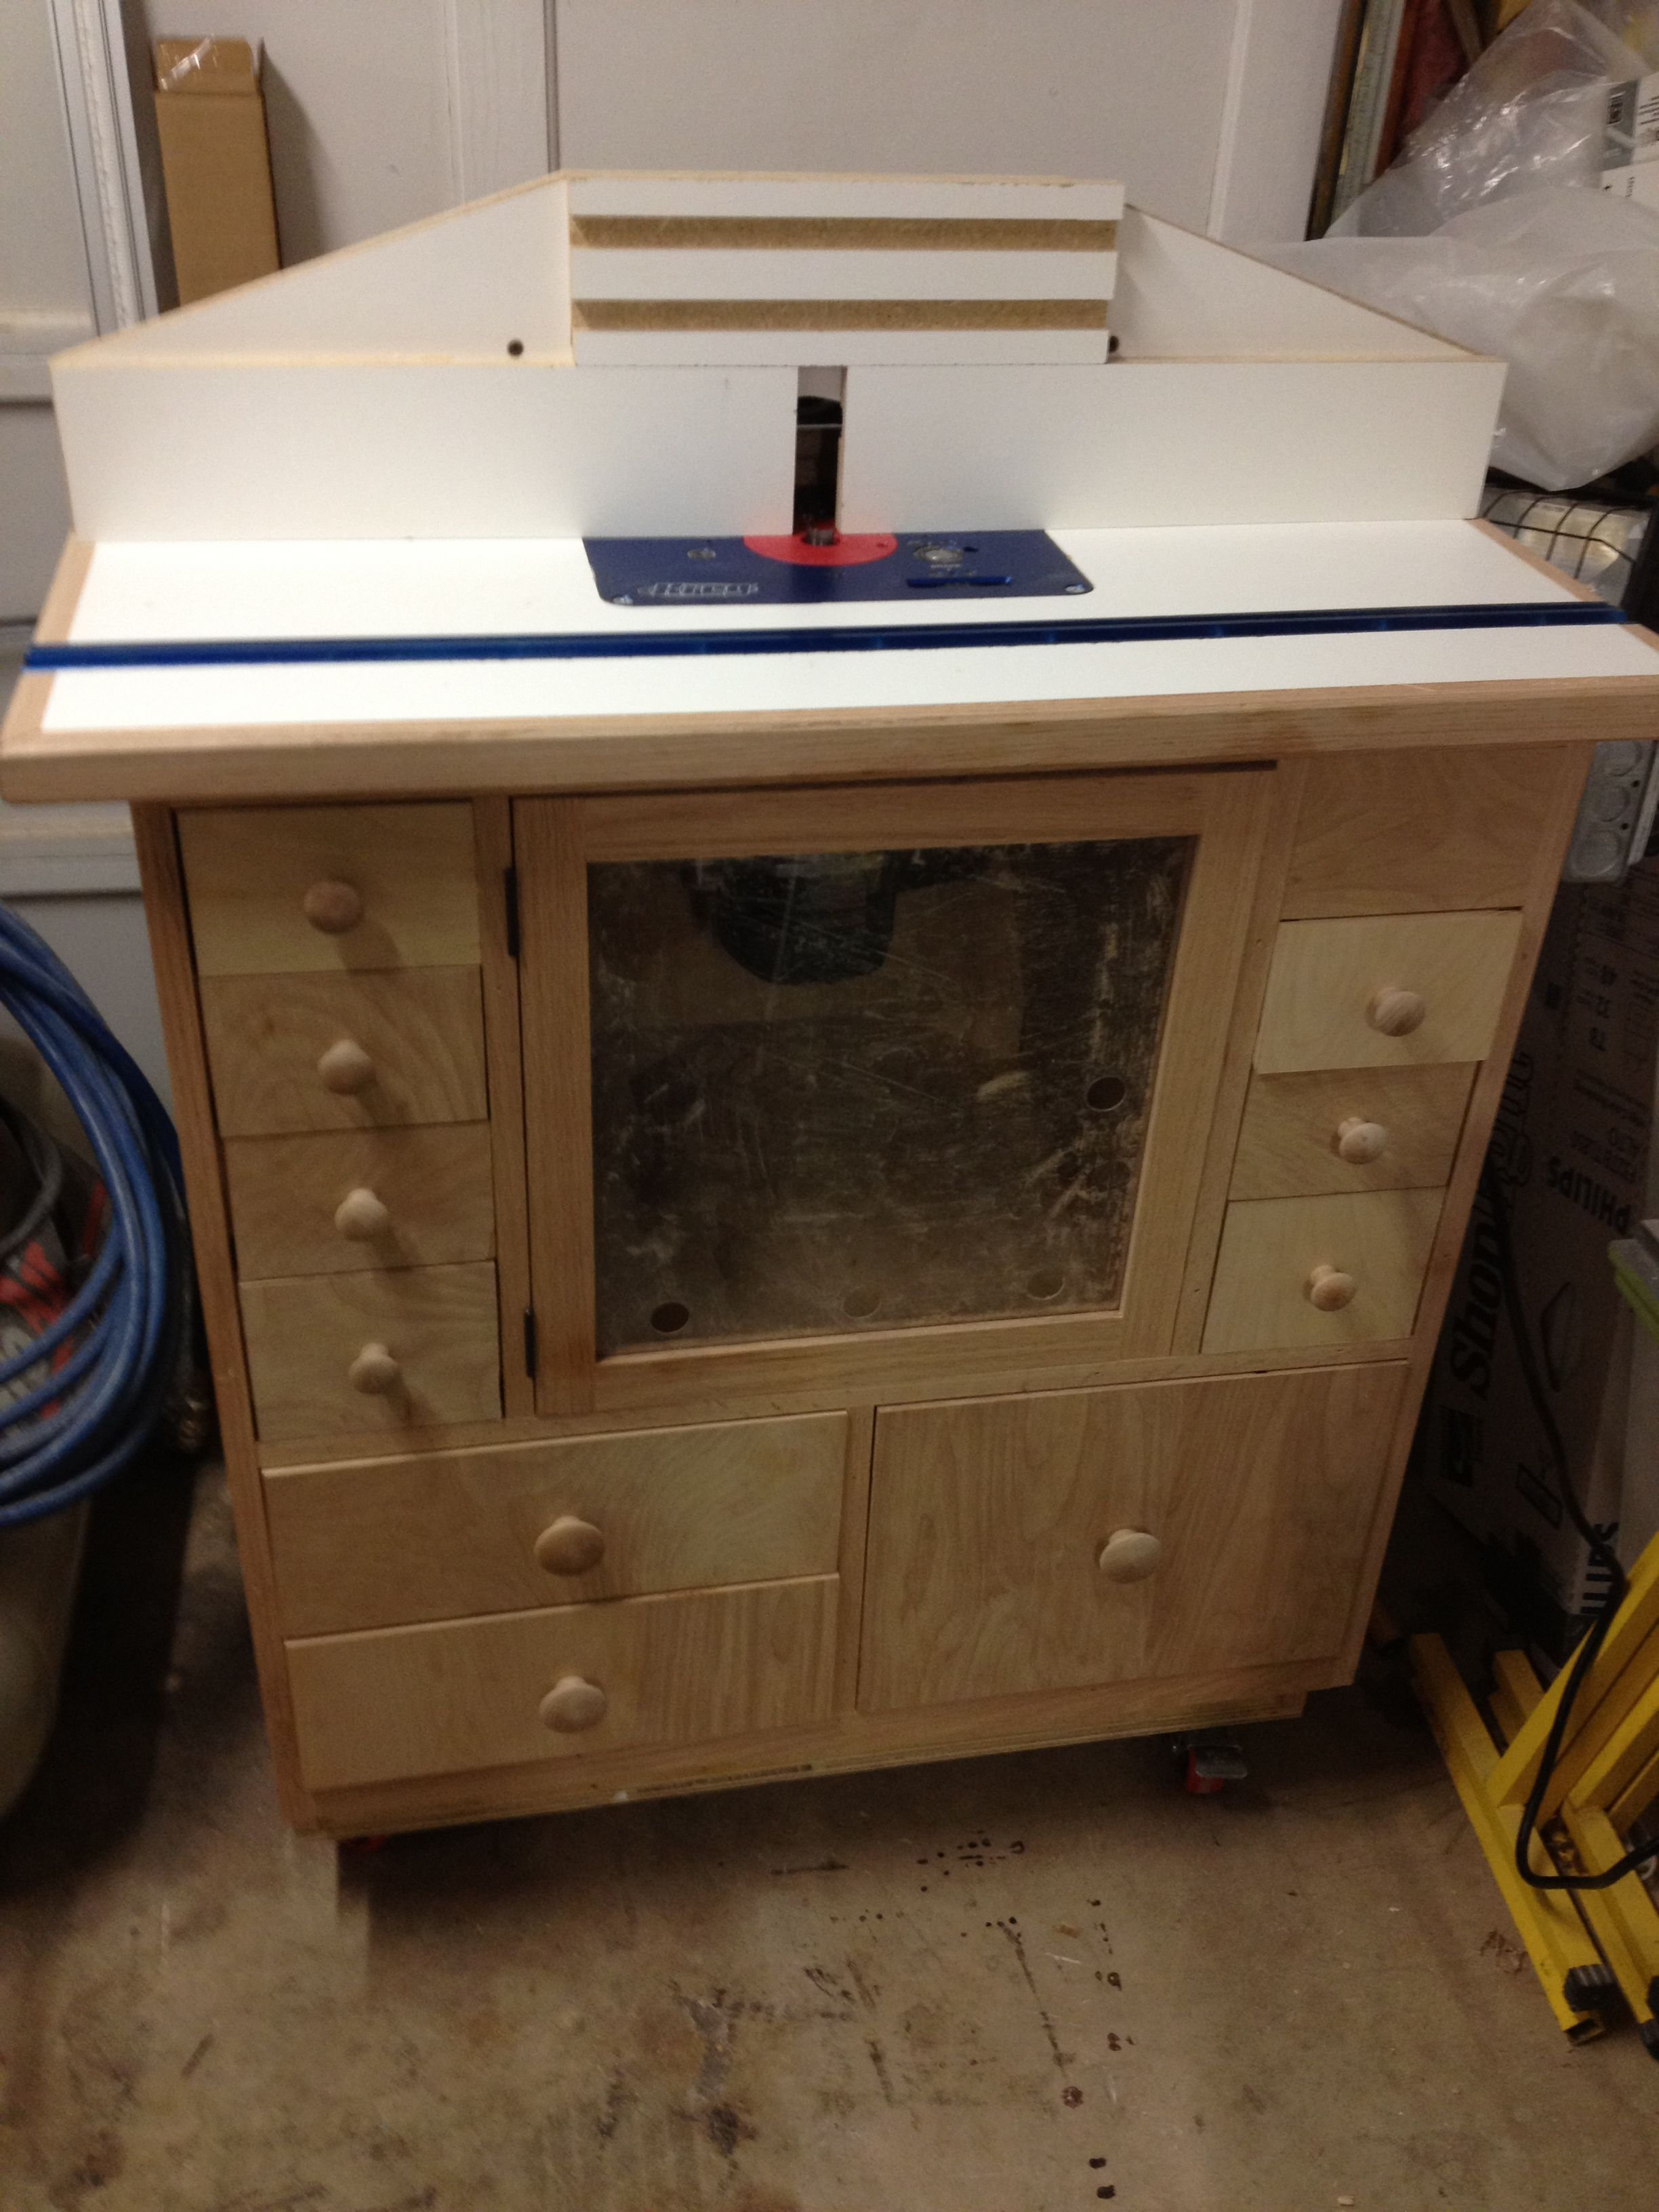 My first project a router table based on plans from the new yankee my first project a router table based on plans from the new yankee workshop greentooth Choice Image